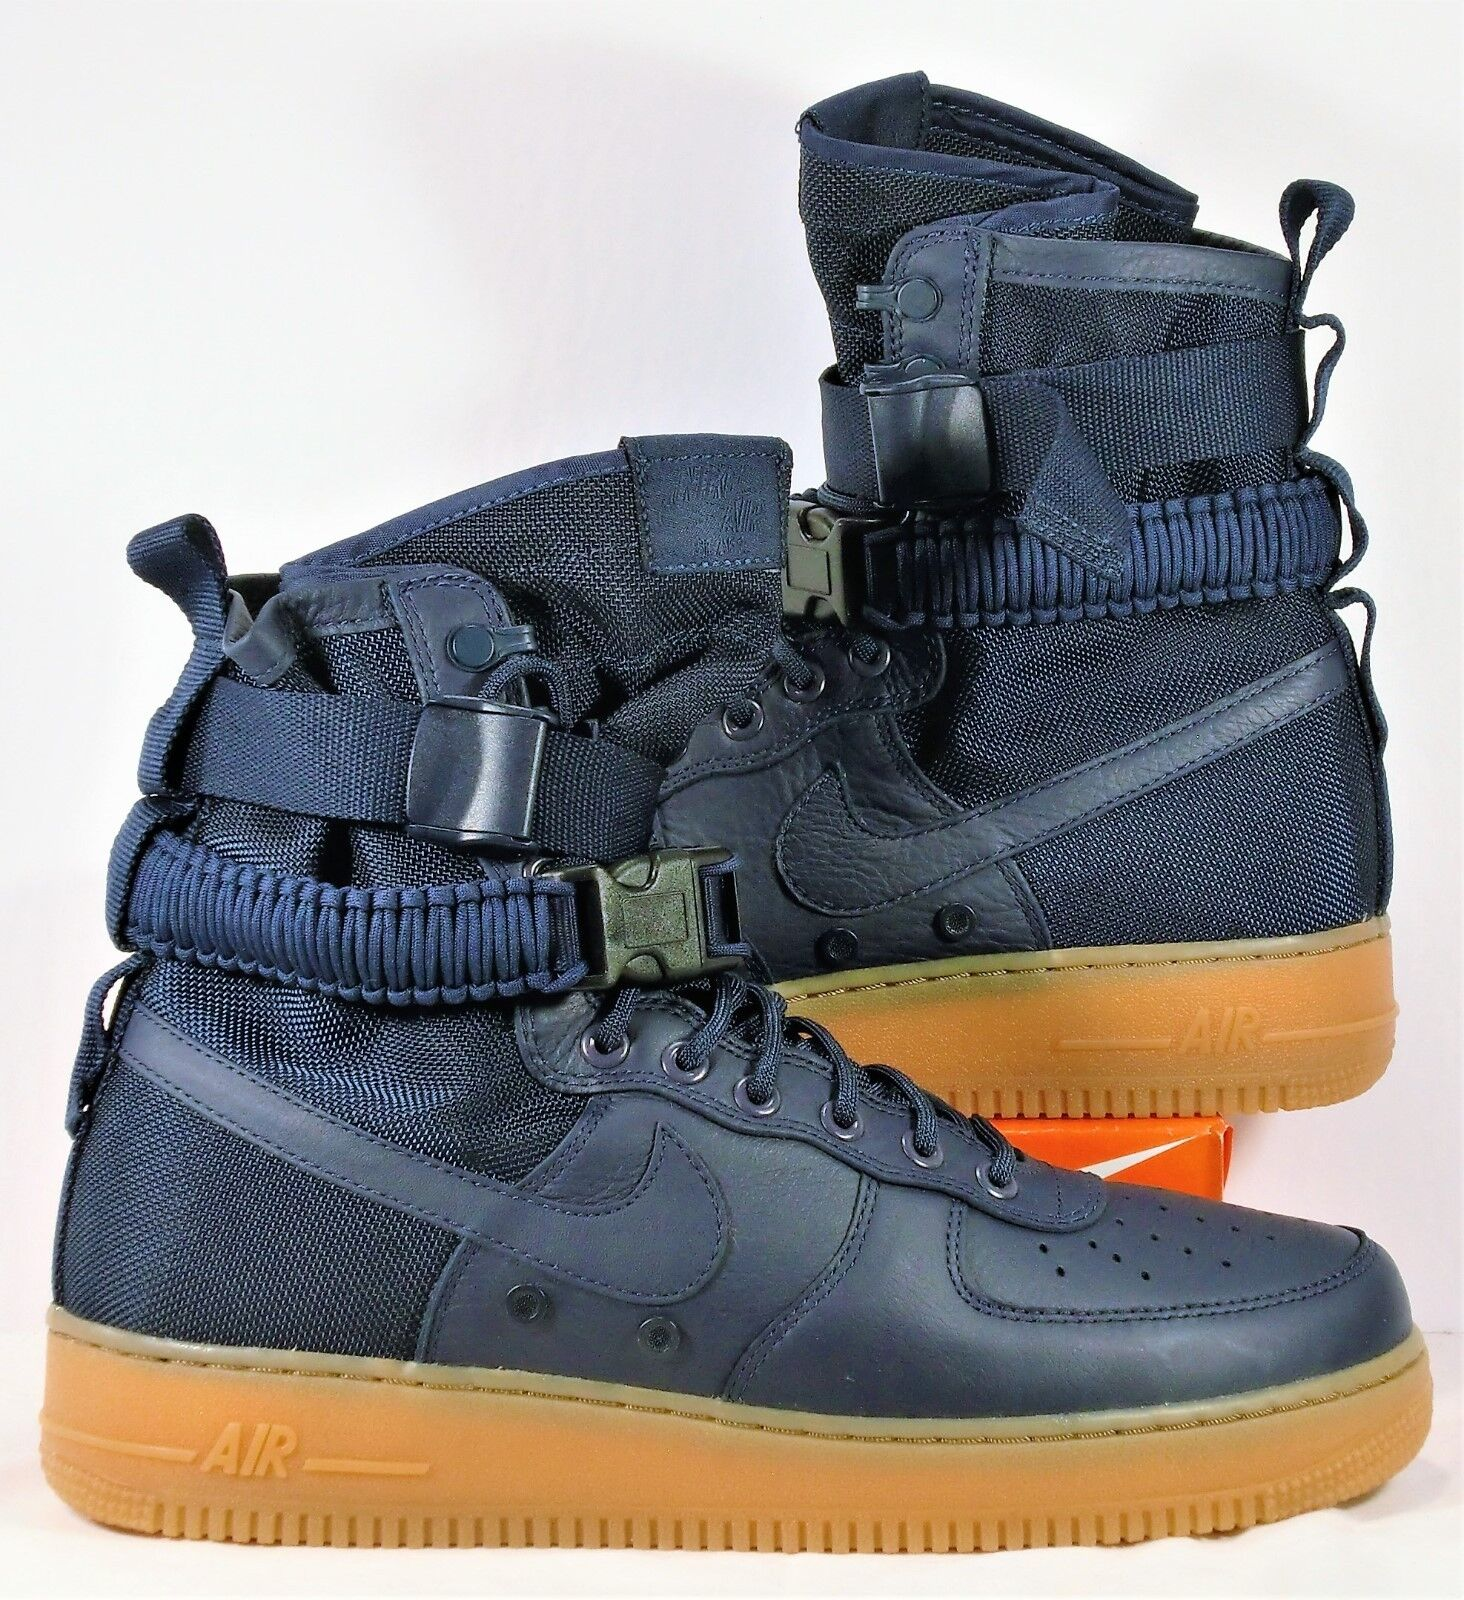 Nike SF Air Force Midnight 1 Leather Midnight Force Navy Blue Men Shoes Sz 11 NEW 864024 400 c581cb